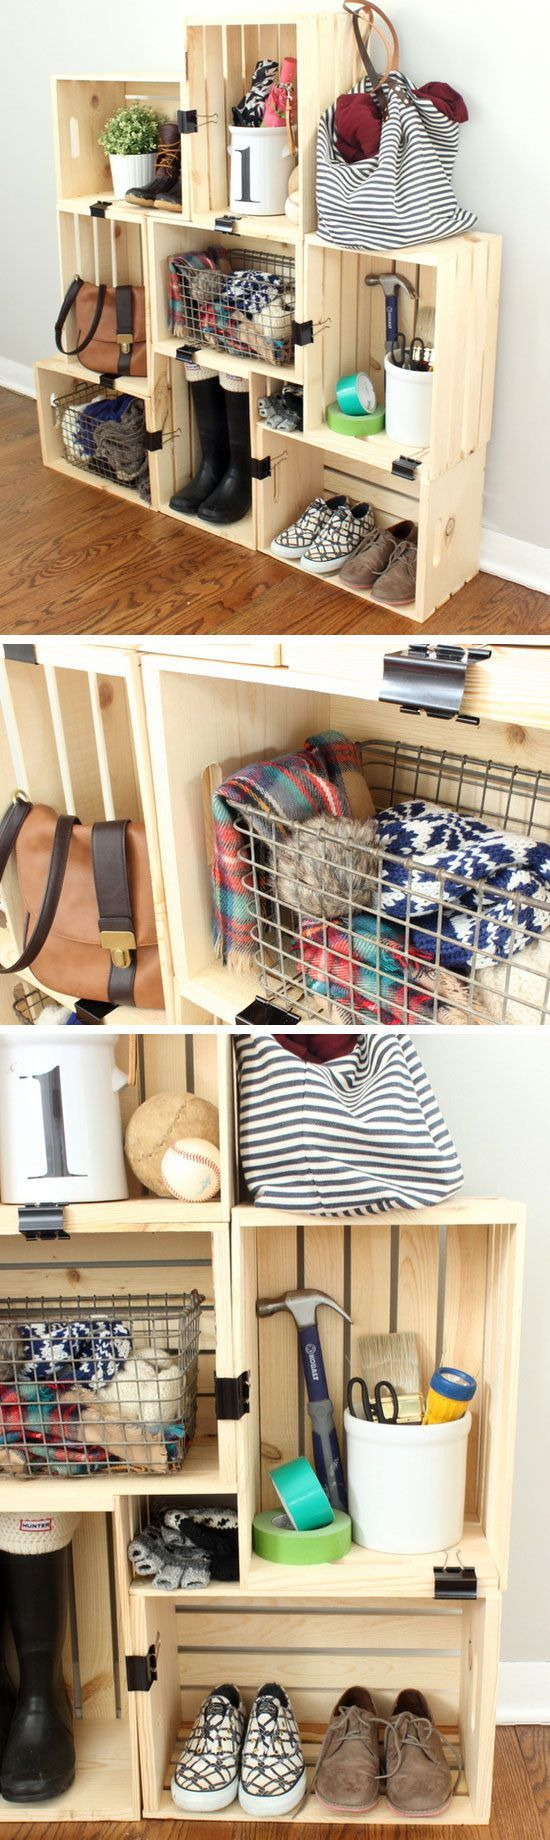 Best 25+ Milk crate storage ideas ideas only on Pinterest | Crate ...